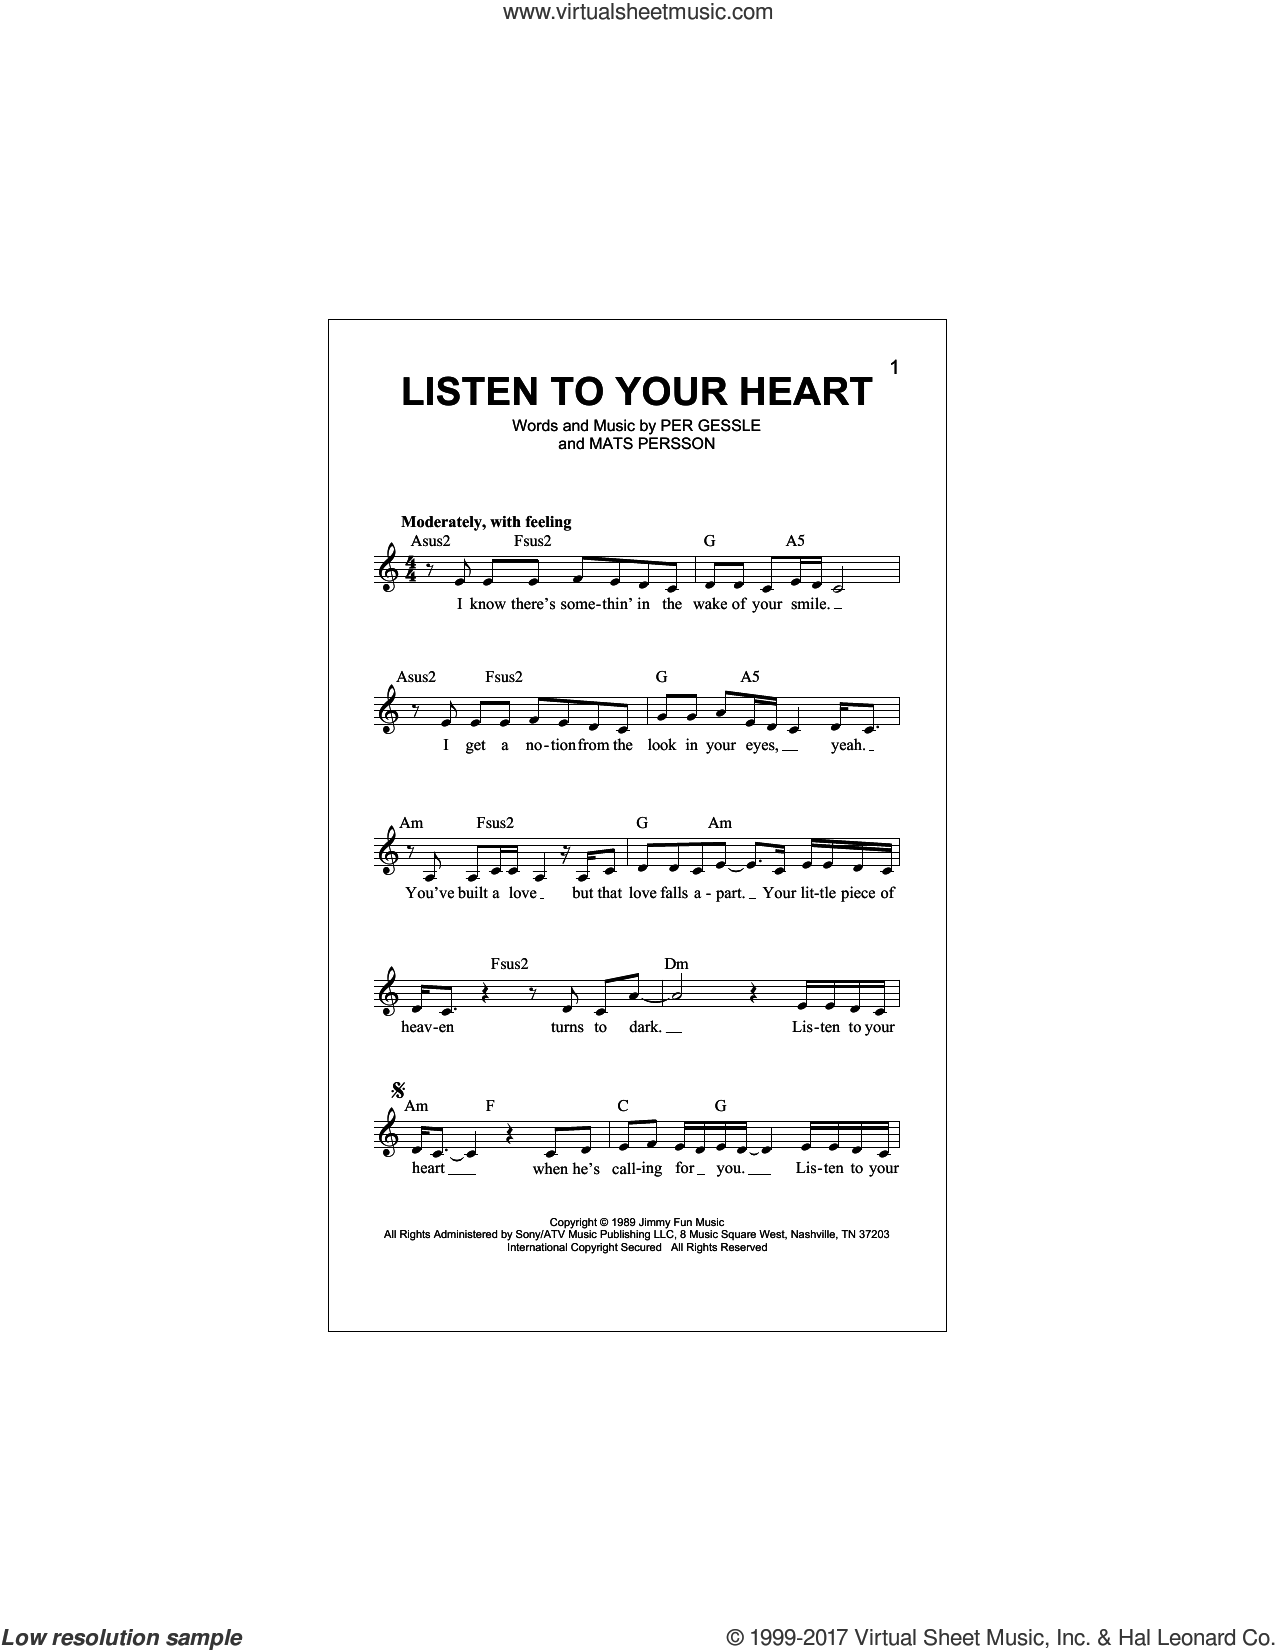 Listen To Your Heart sheet music for voice and other instruments (fake book) by Roxette, Mats Persson and Per Gessle, intermediate skill level